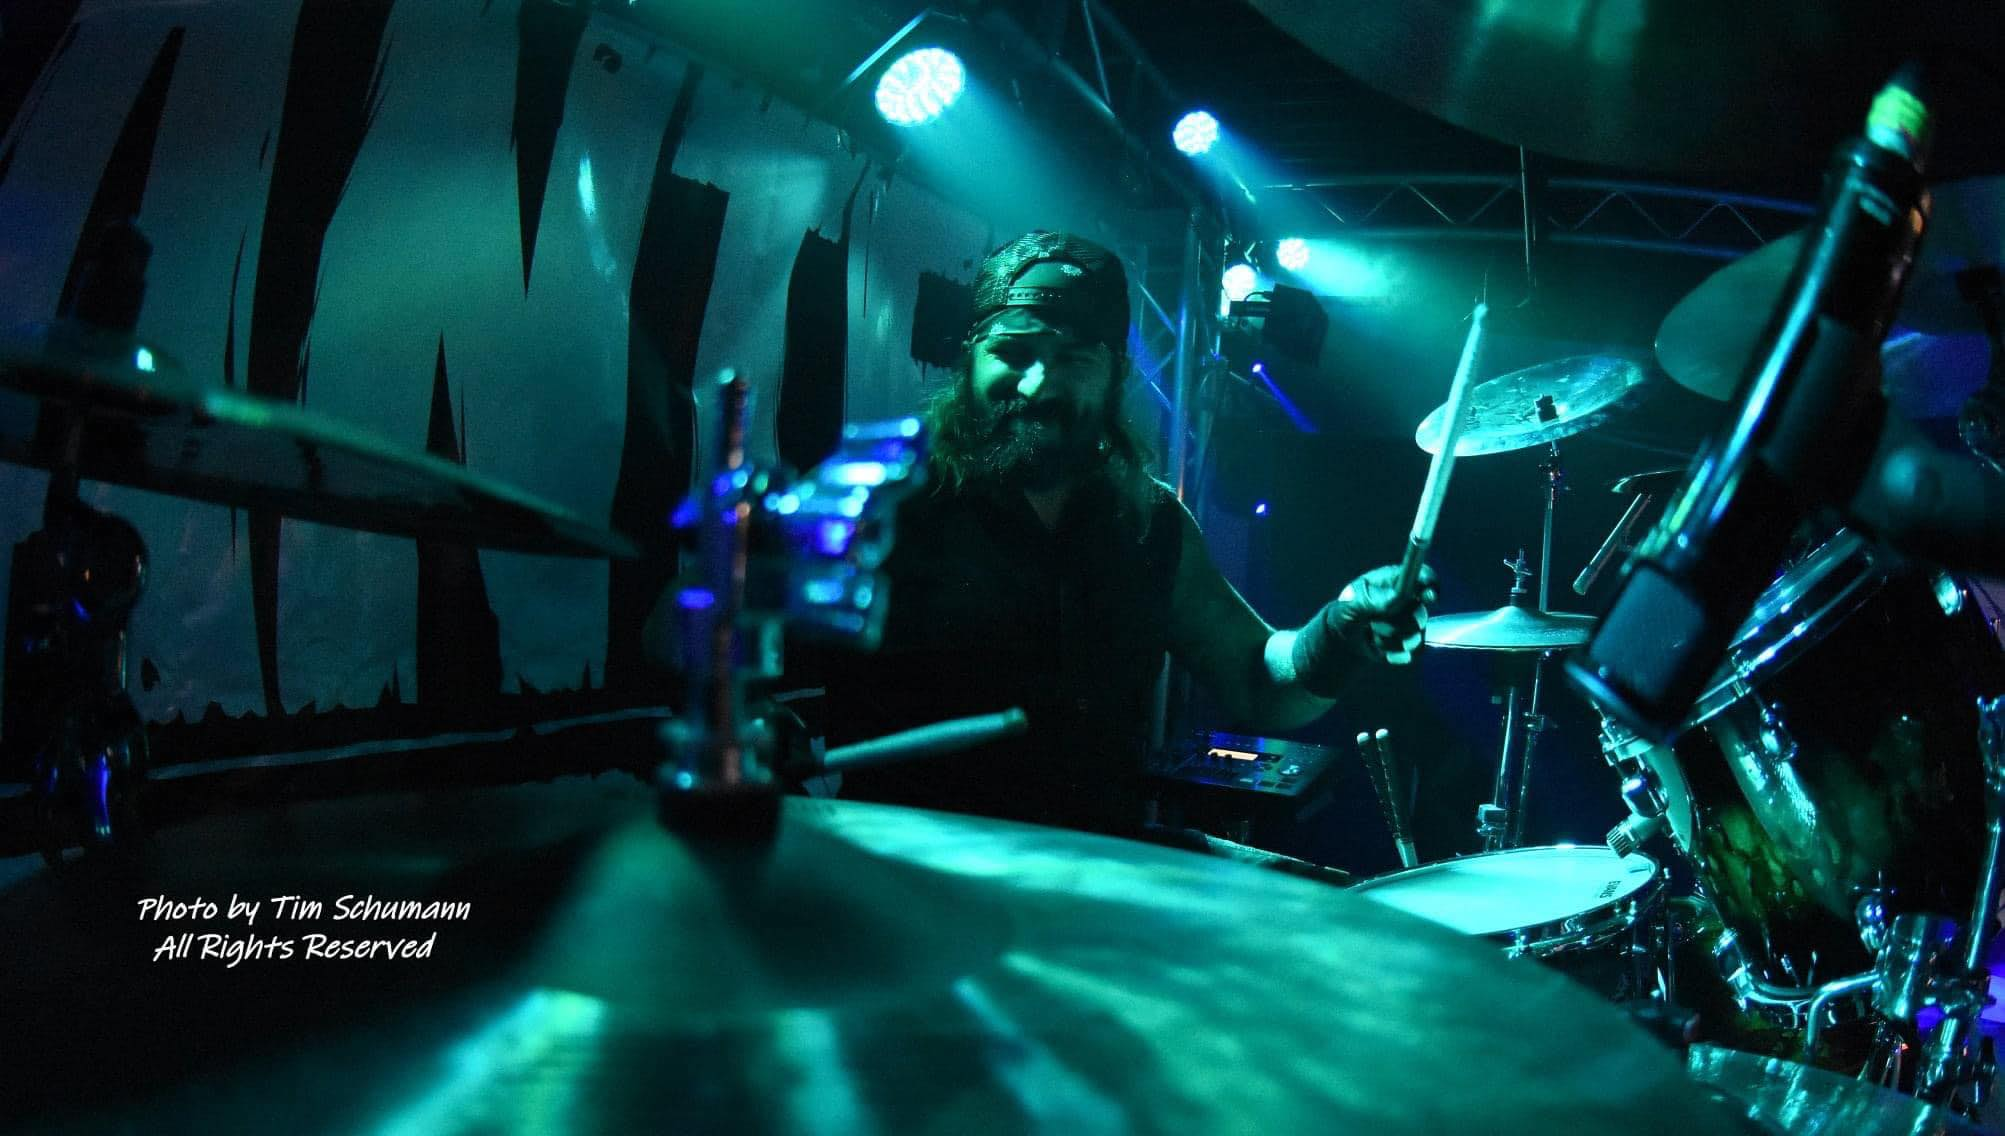 Drummer Jay Arriaga poses with Scorpion Percussion drumsticks behind his drumkit